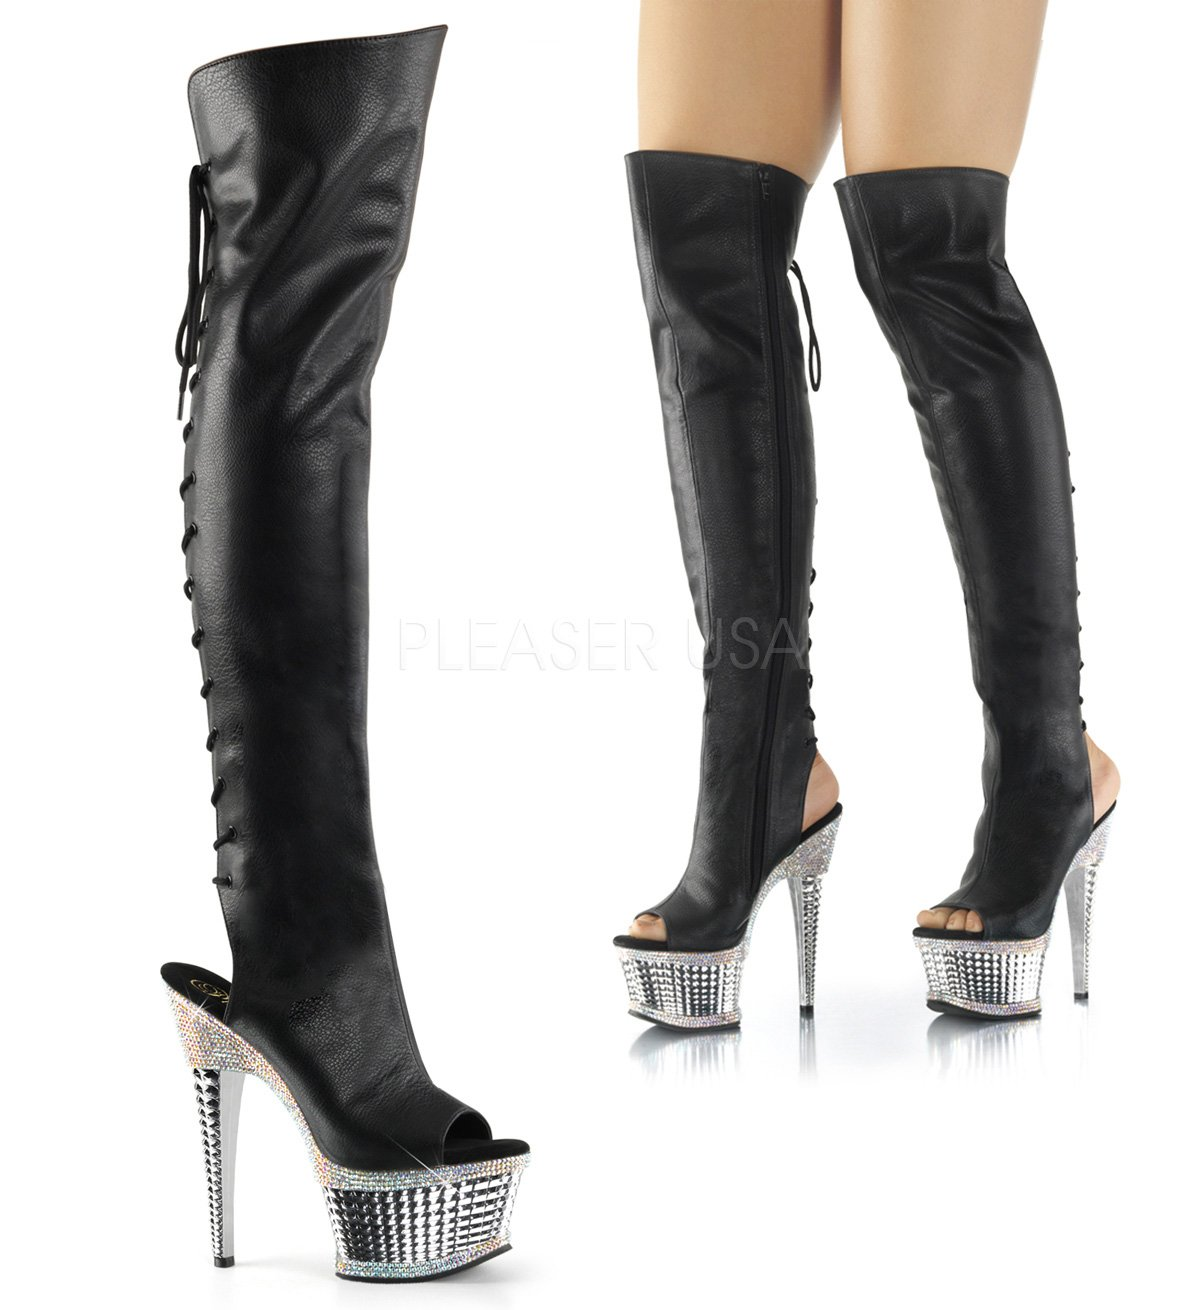 Pleaser Women's Illusion 3019RS Thigh High Boots, Black PU Leather, Synthetic, 9 M